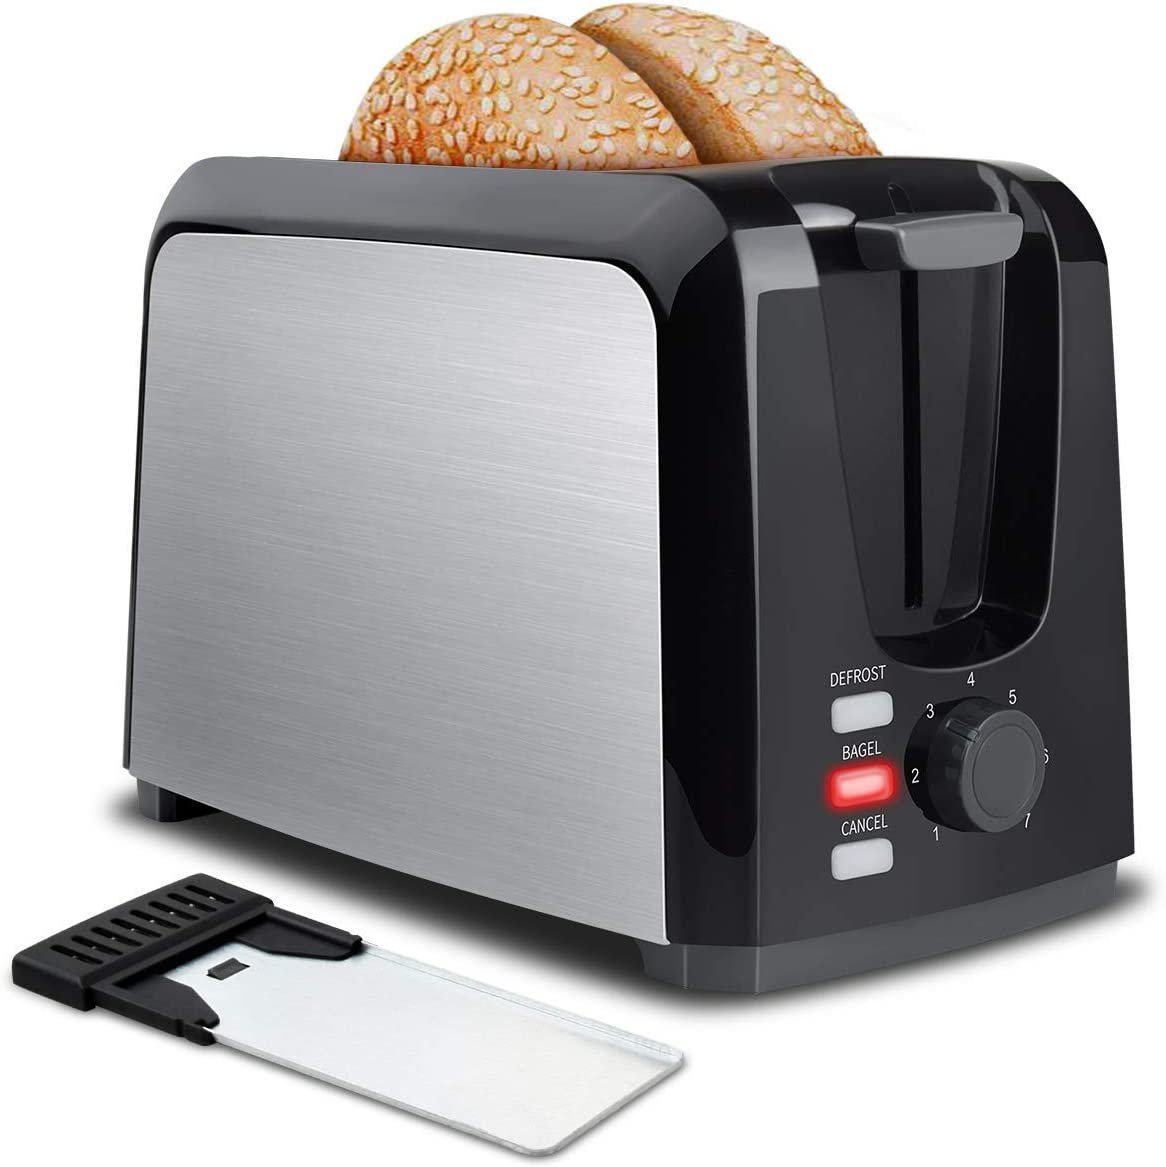 Toaster 2 Slice Toasters 2 Slice Best Rated Prime Toaster Wide Slot with Removable Crumb Tray Two Slice Toaster Stainless Steel Toasters with 7 Bread Shade Settings, Bagel, Defrost, Cancel Function for Bread, Waffles (Renewed)